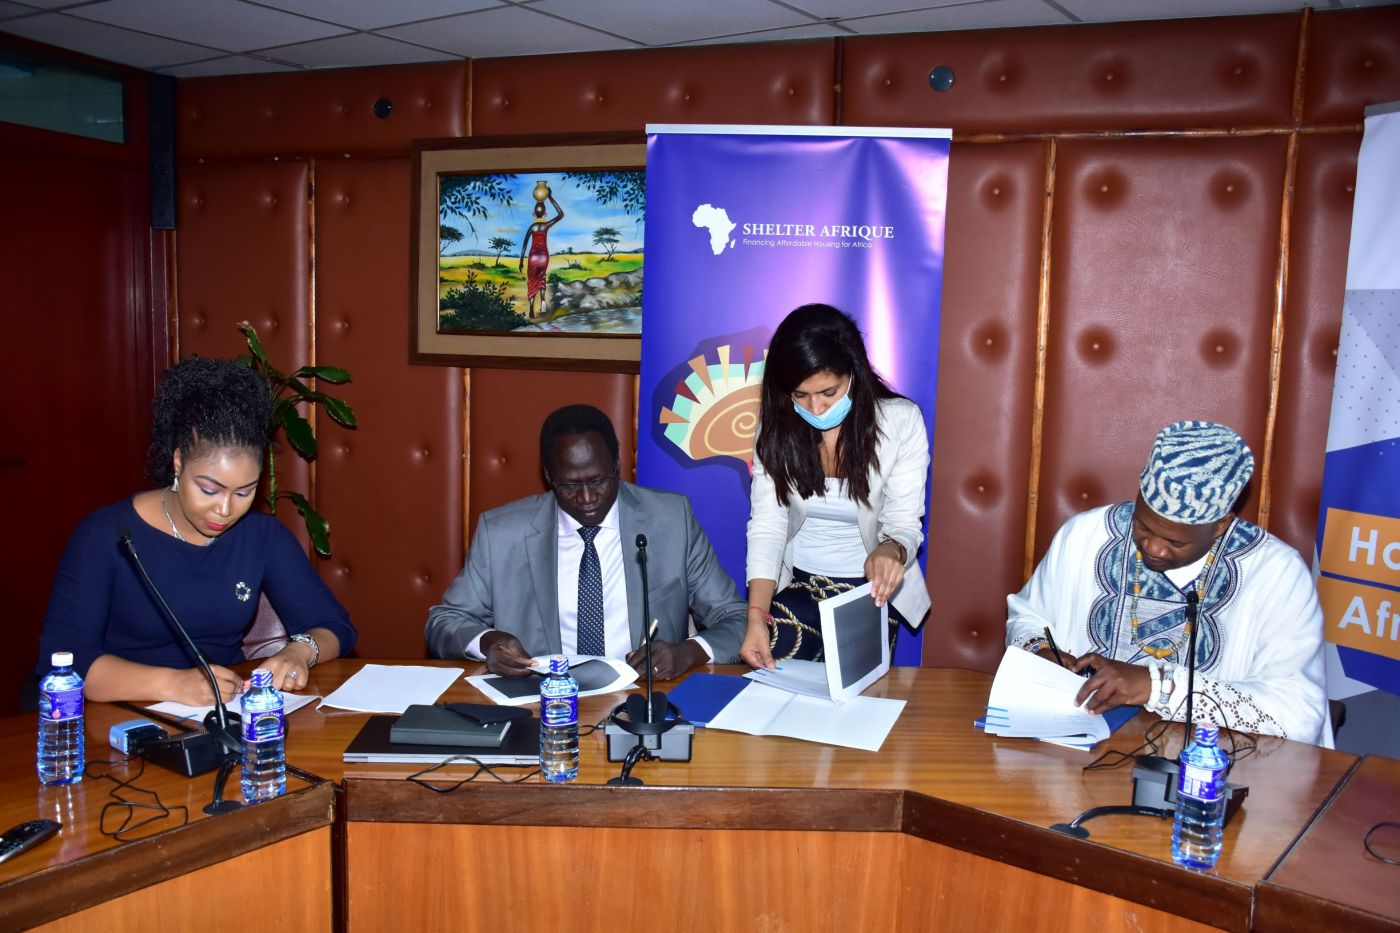 Shelter Afrique Chief Executive Officer Andrew Chimphondah andTriangle Real Estate Chief Executive OfficerAmb. Arop Deng Kuol, on behalf of theMinistry of Finance and Planning for the Government of South Sudan(Photo credit: courtesy image)